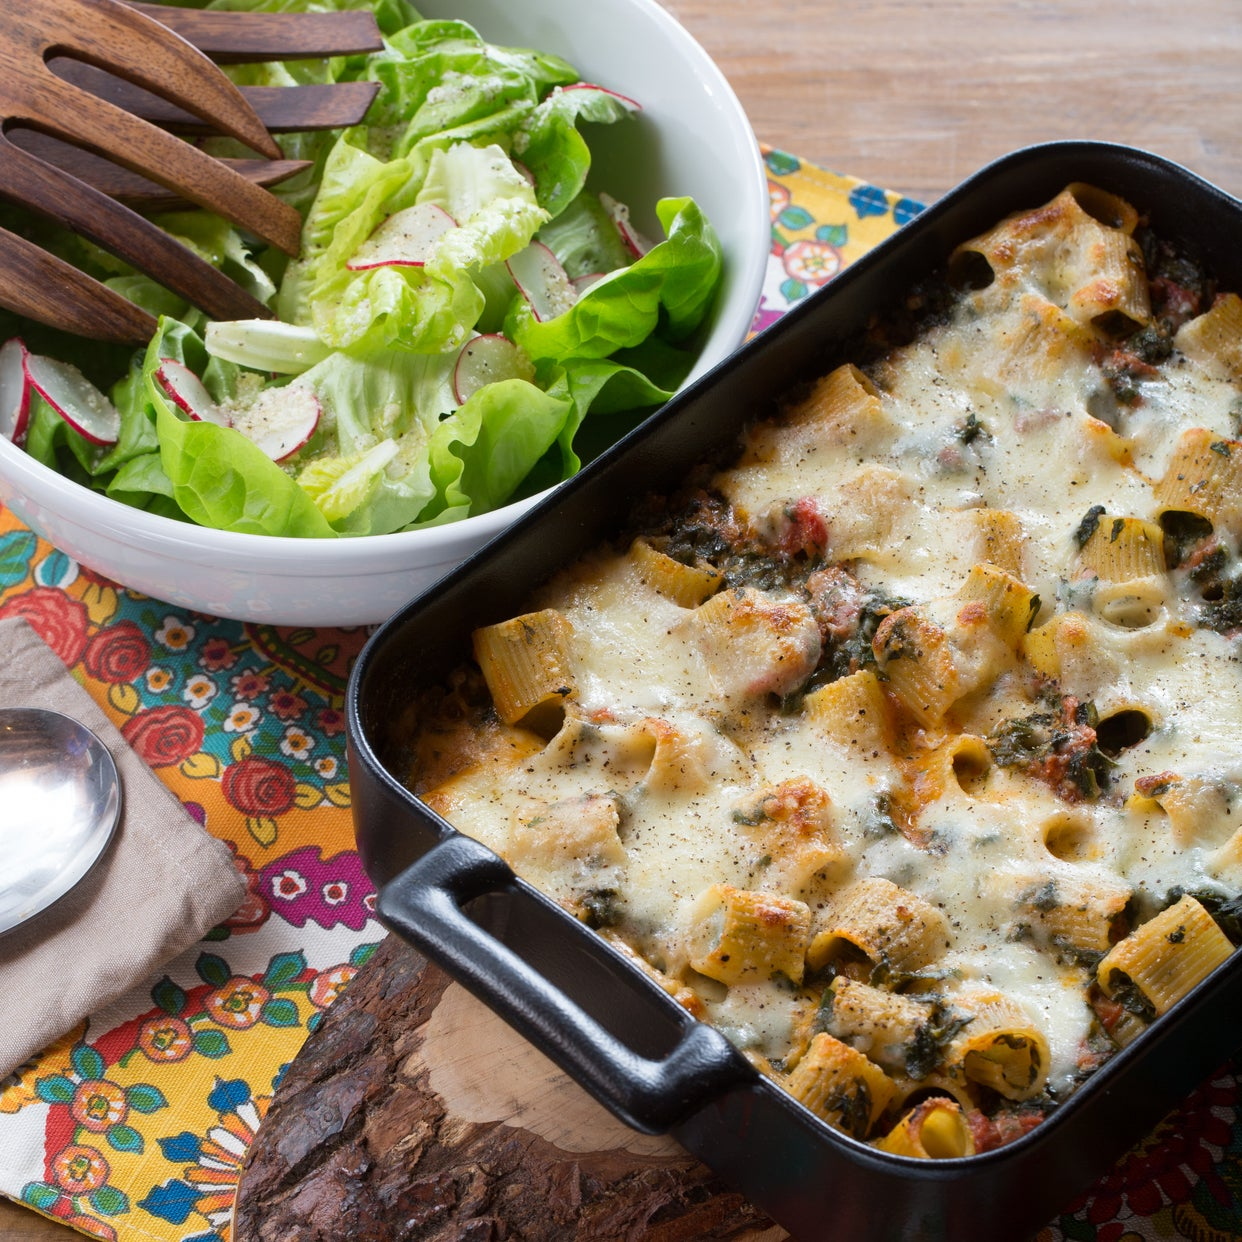 Baked Spinach & Mozzarella Rigatoni with Butter Lettuce & Radish Salad